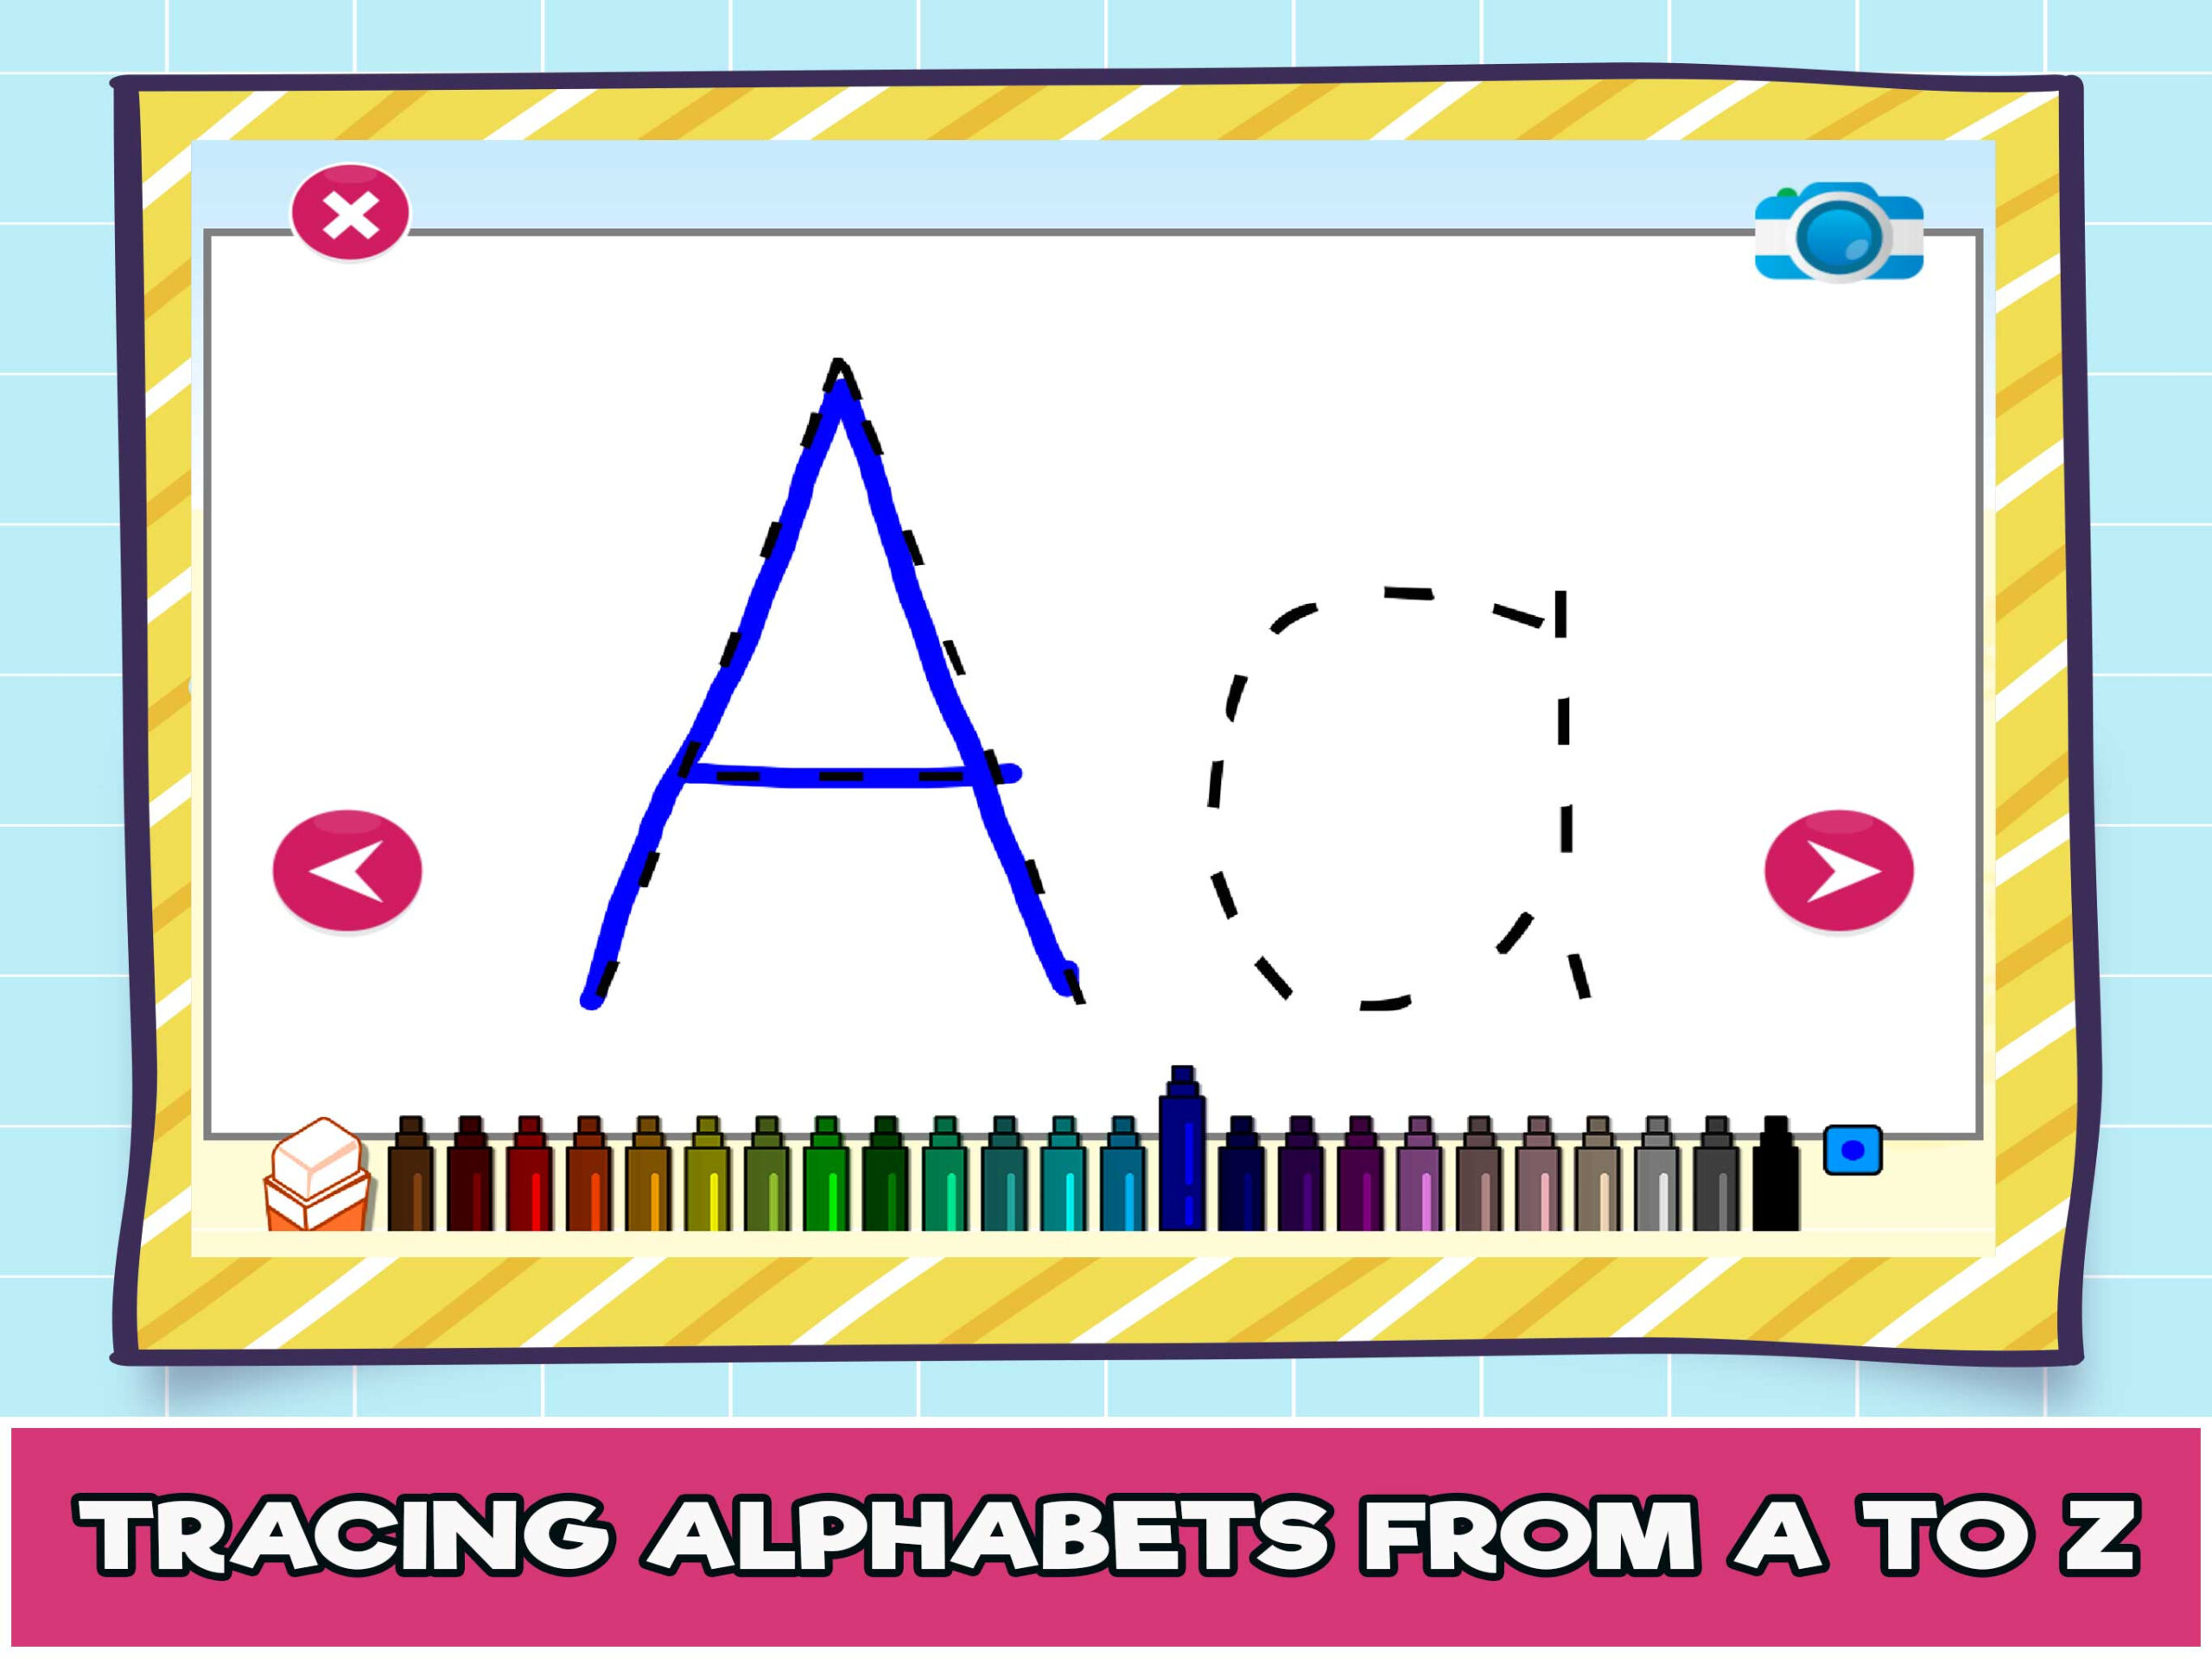 Free Online Alphabet Tracing Game For Kids - The Learning Apps throughout Alphabet Tracing Game App